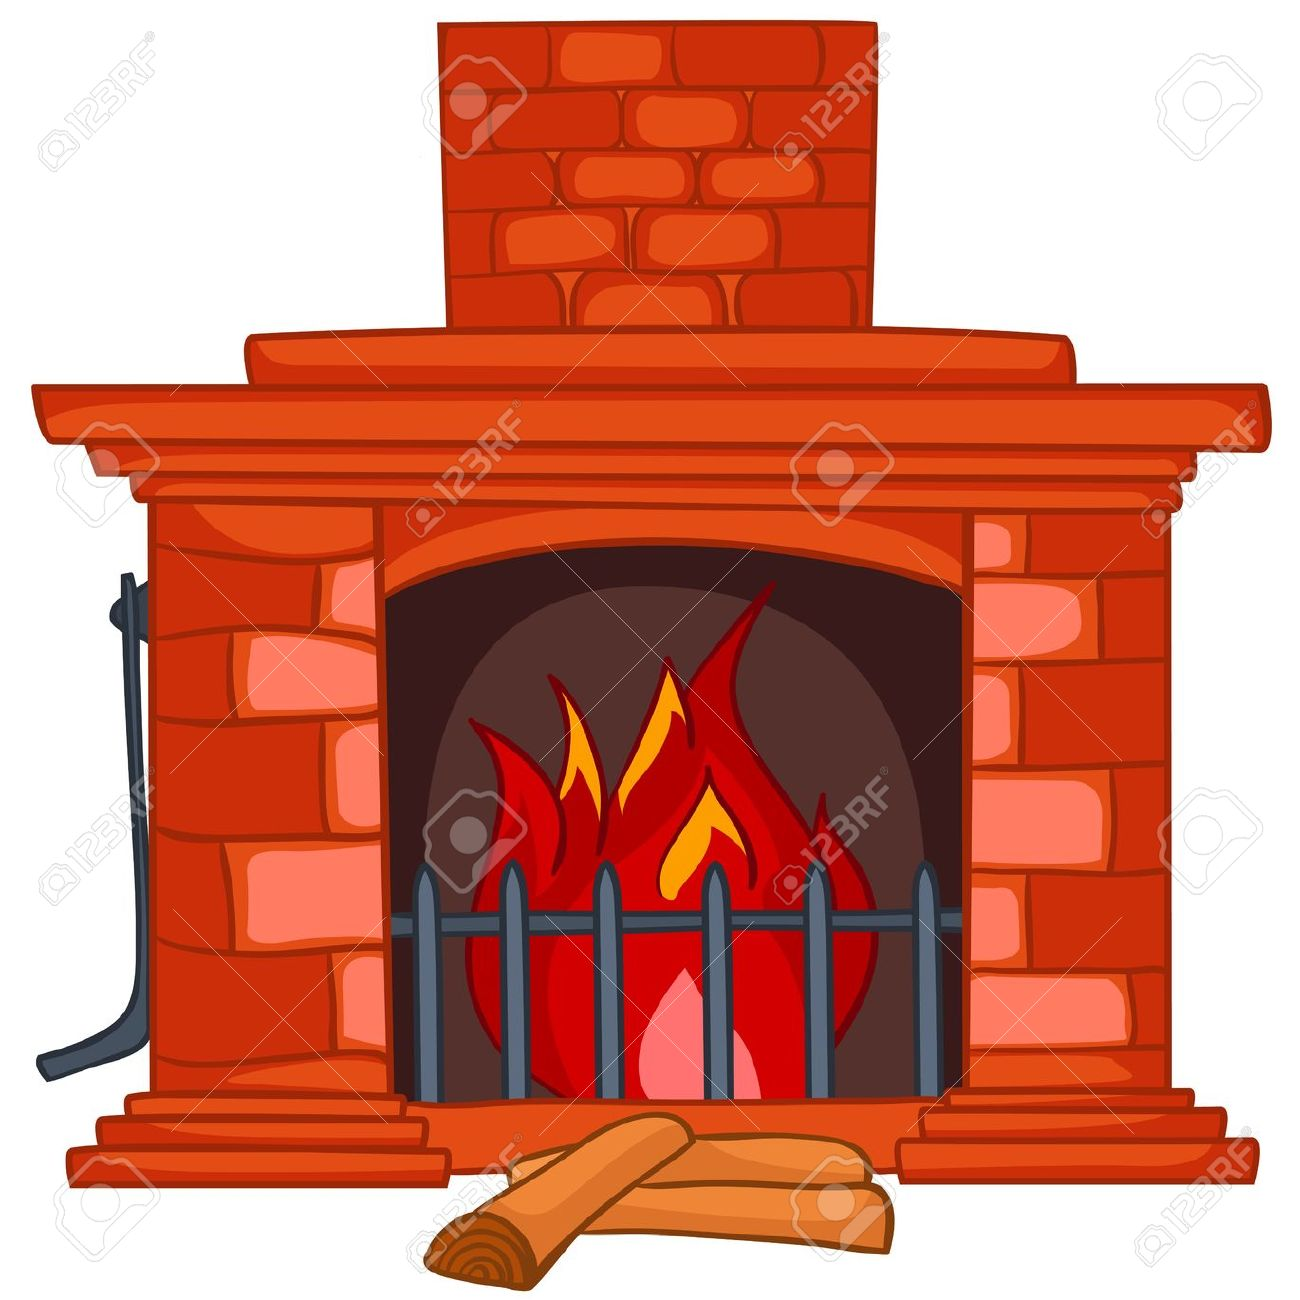 Clipart Fireplace - Clipartall-Clipart Fireplace - clipartall-4